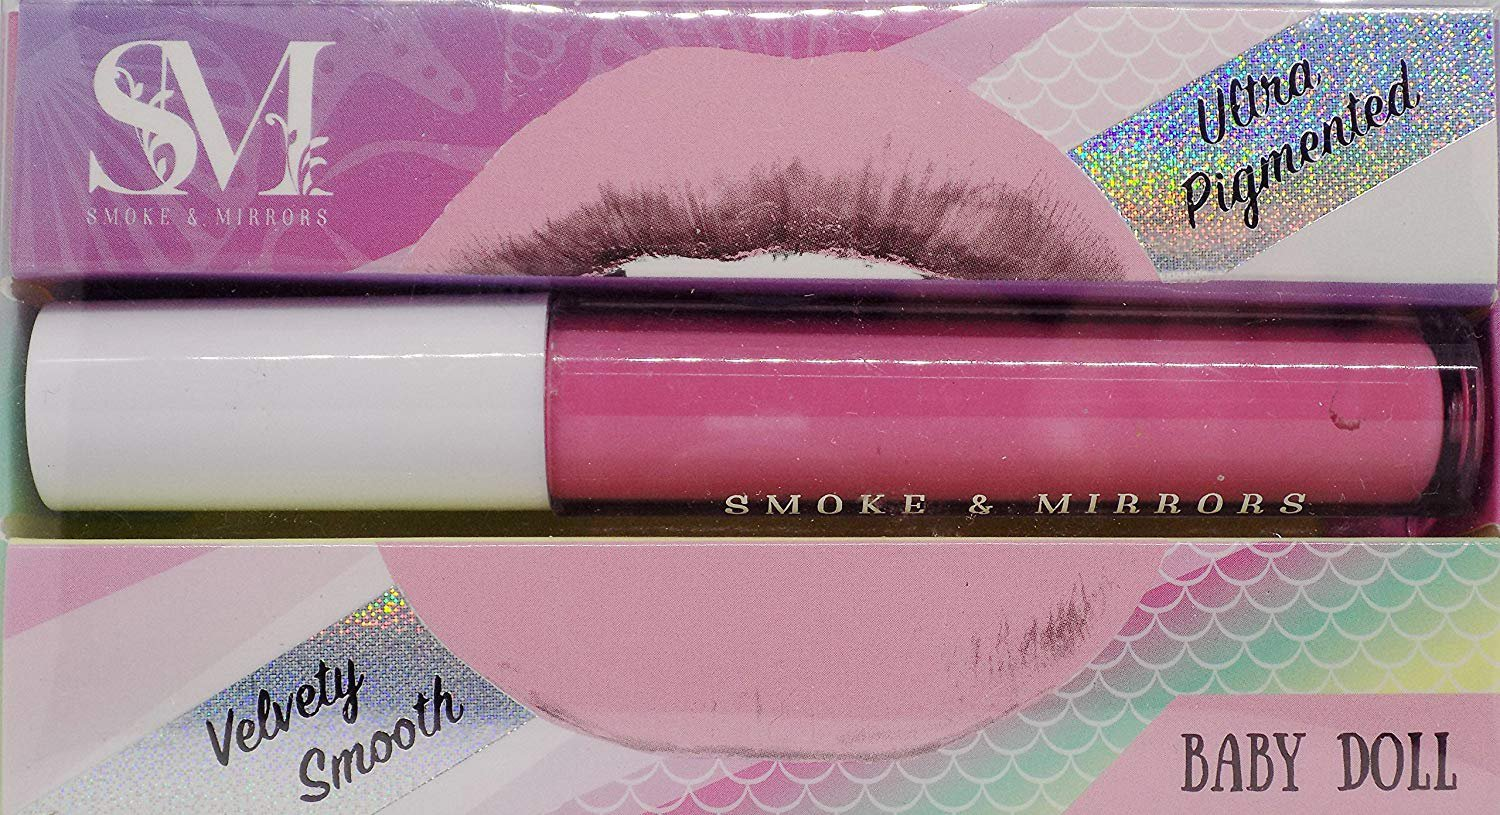 Smoke & Mirrors Matte Lip Gloss, Baby Doll